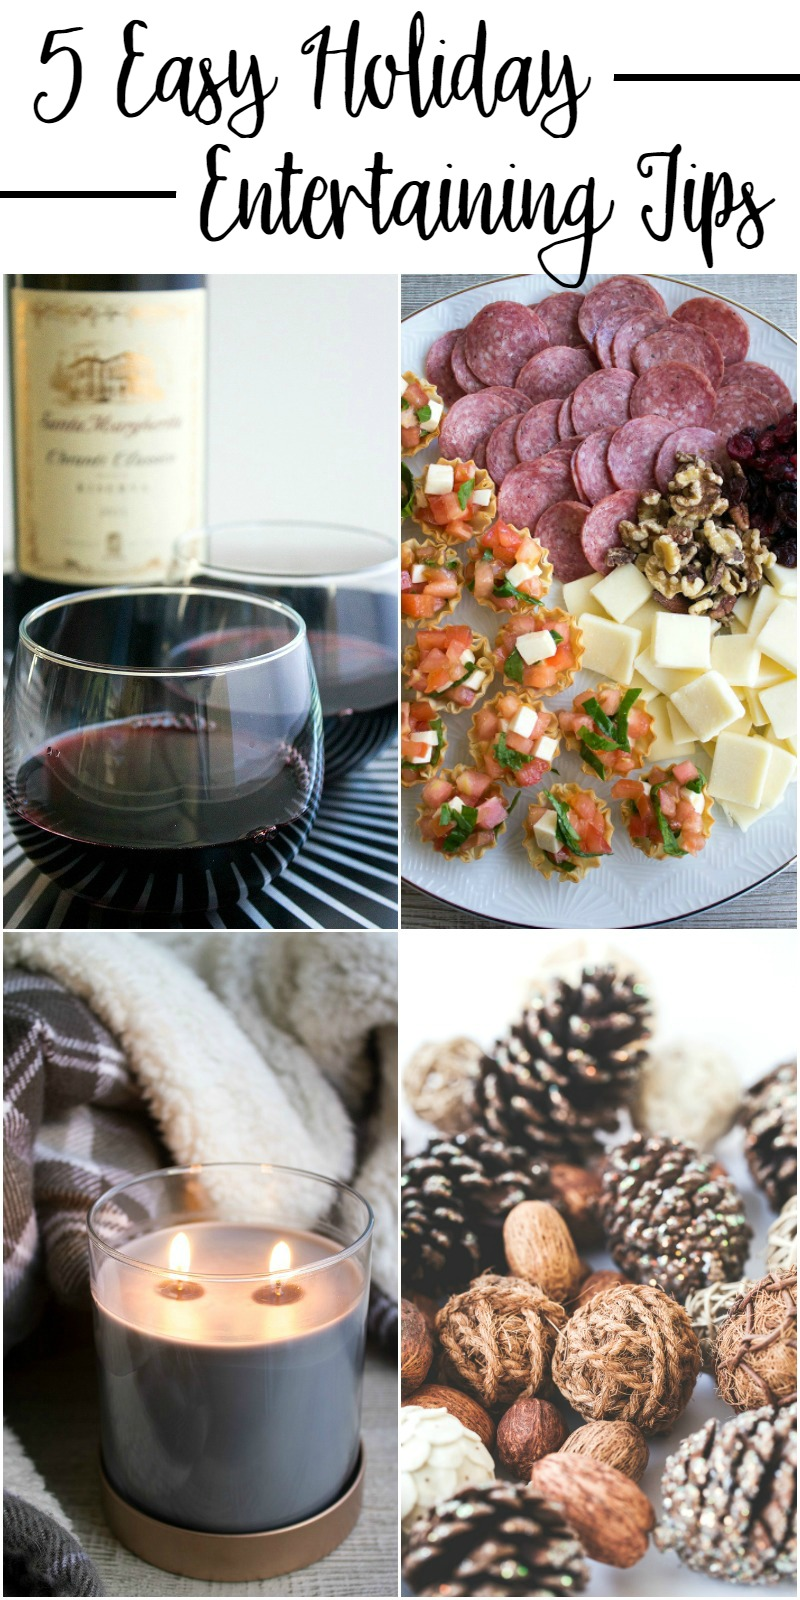 These 5 Easy Holiday Entertaining Tips will help you to have a fantastic holiday party that you'll able to enjoy and make your the house the place everyone wants to go to this holiday season!